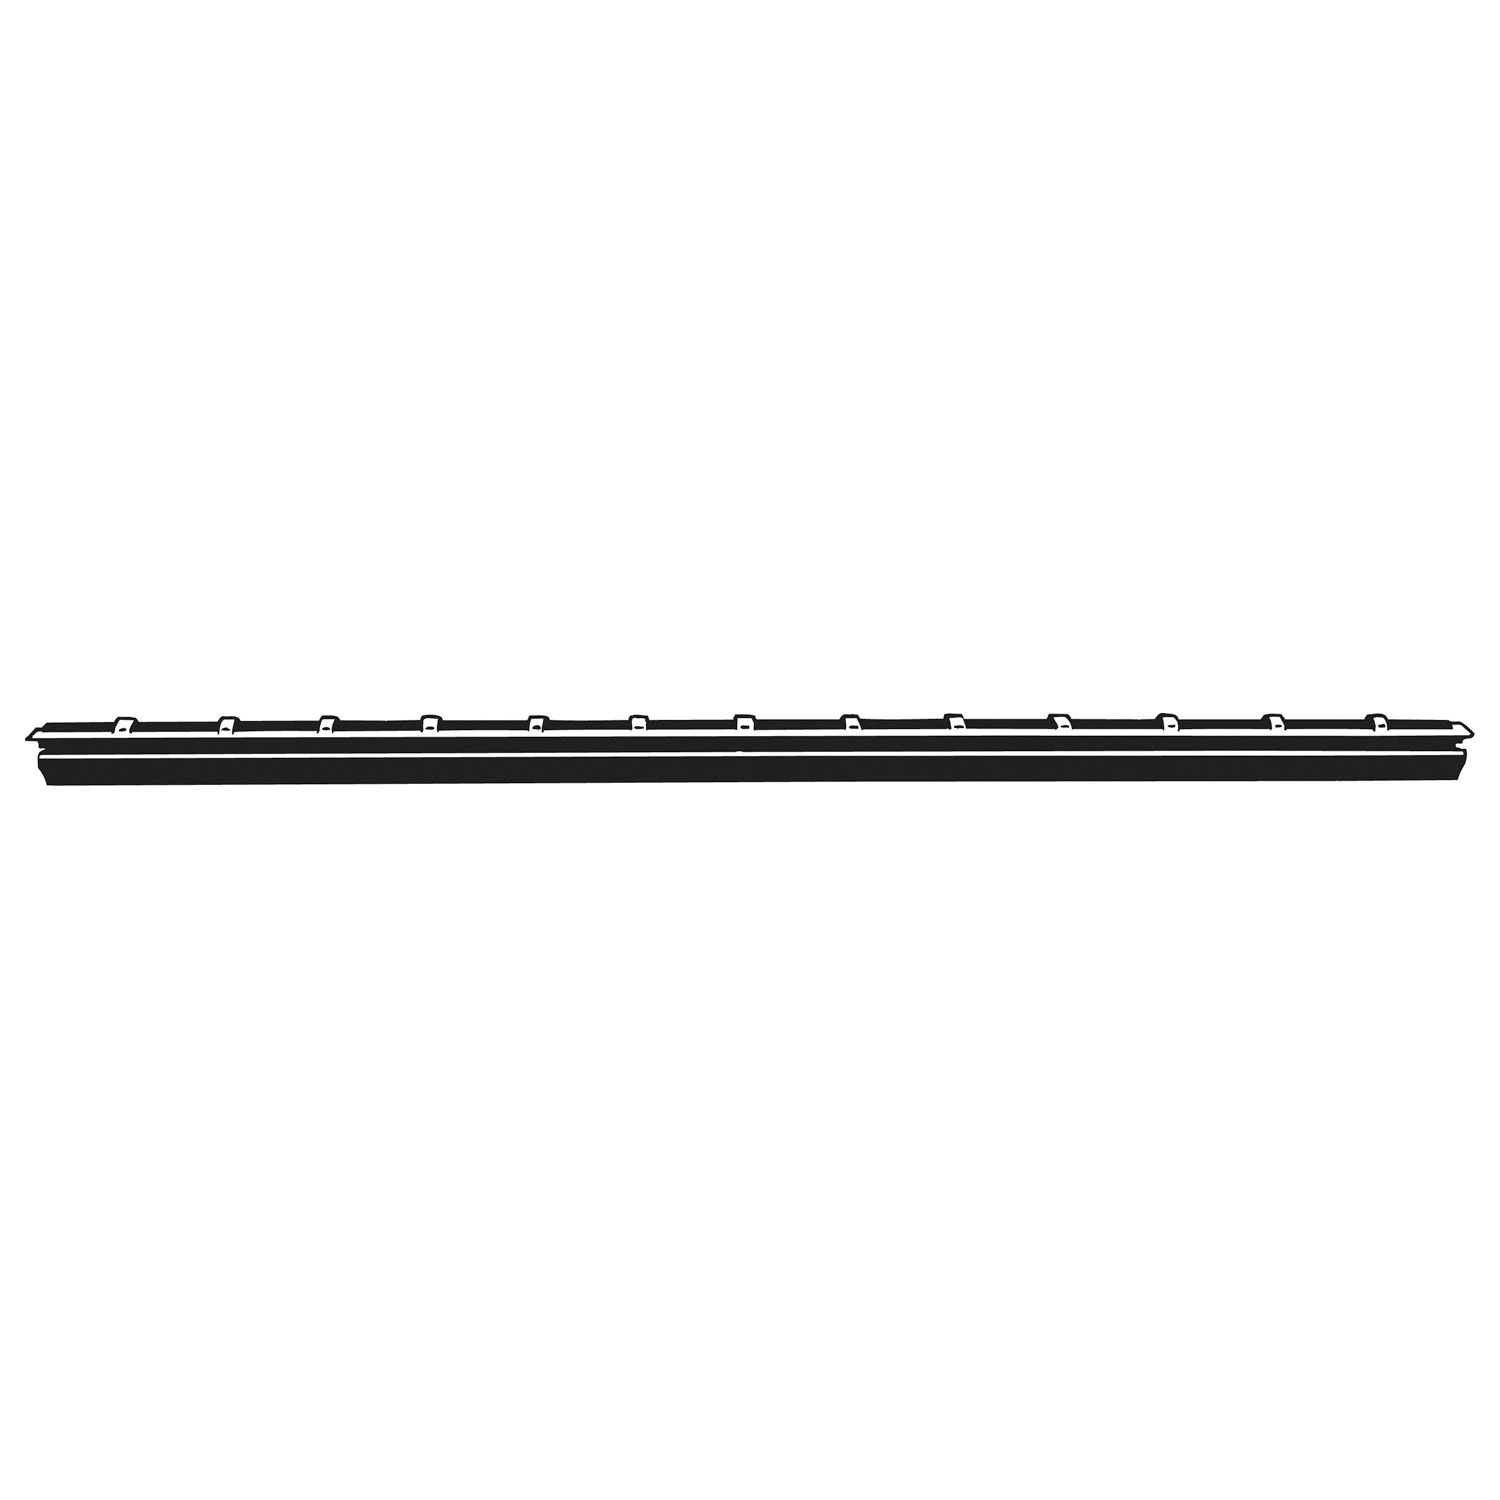 ACDELCO PROFESSIONAL - Performance Windshield Wiper Blade Refill - DCC 8-5203